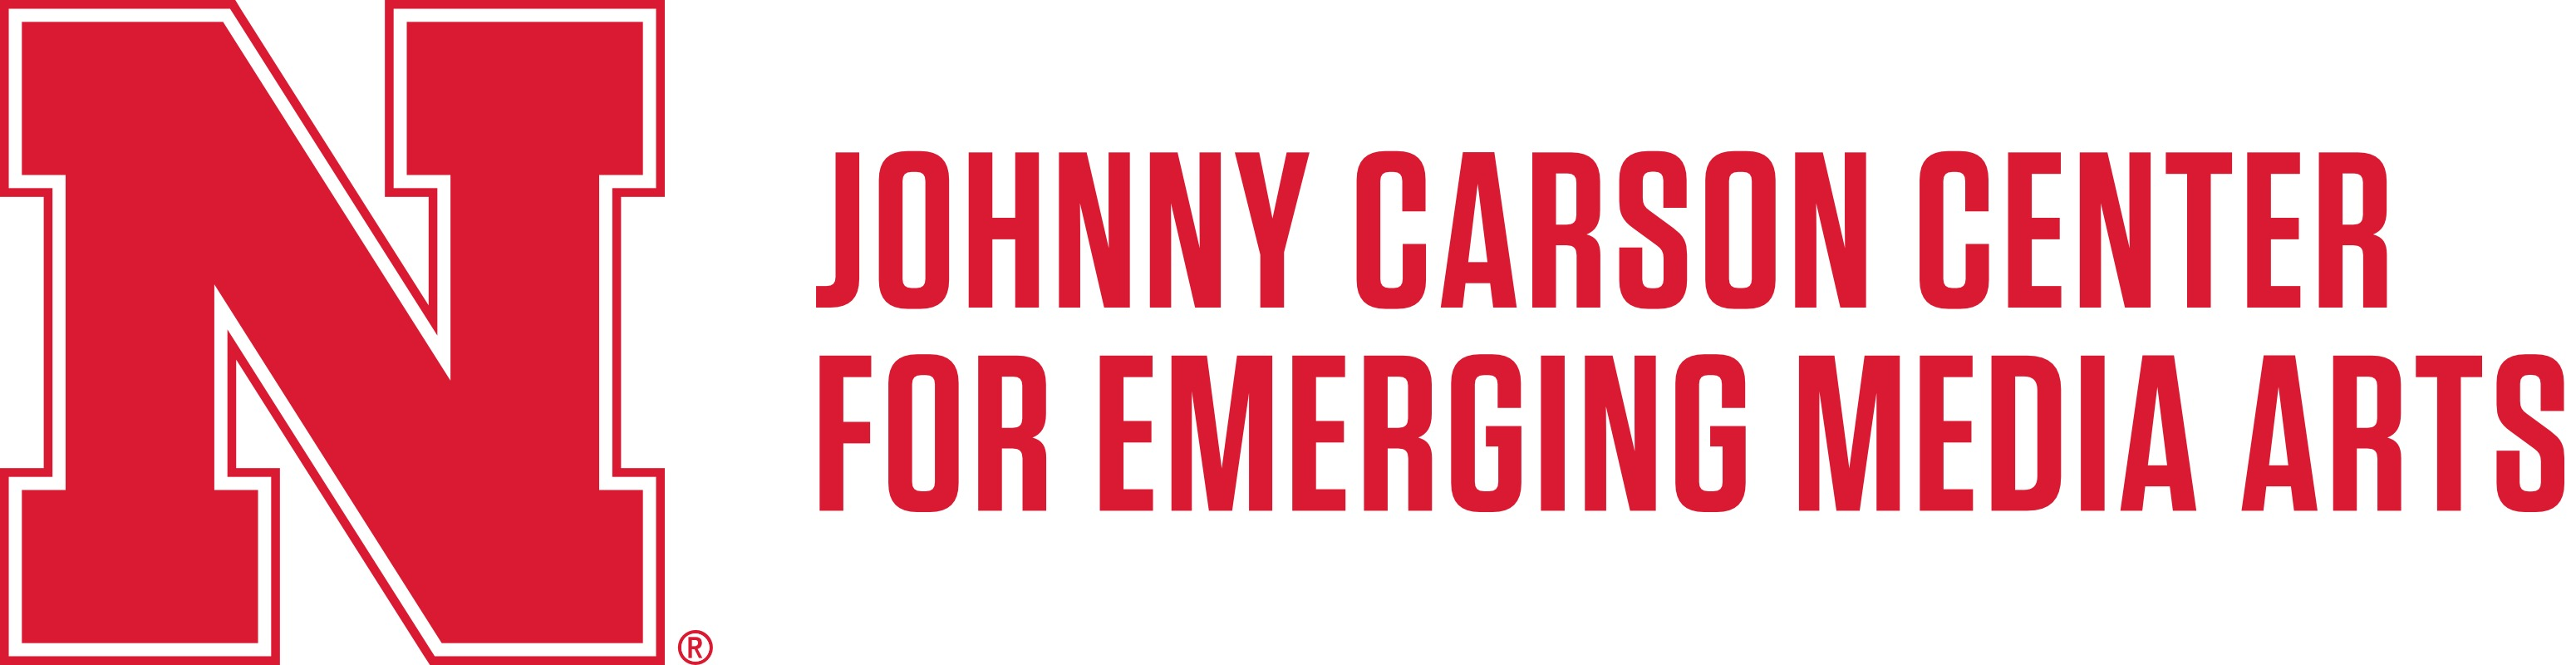 Johnny Carson Center for Emerging Media Arts